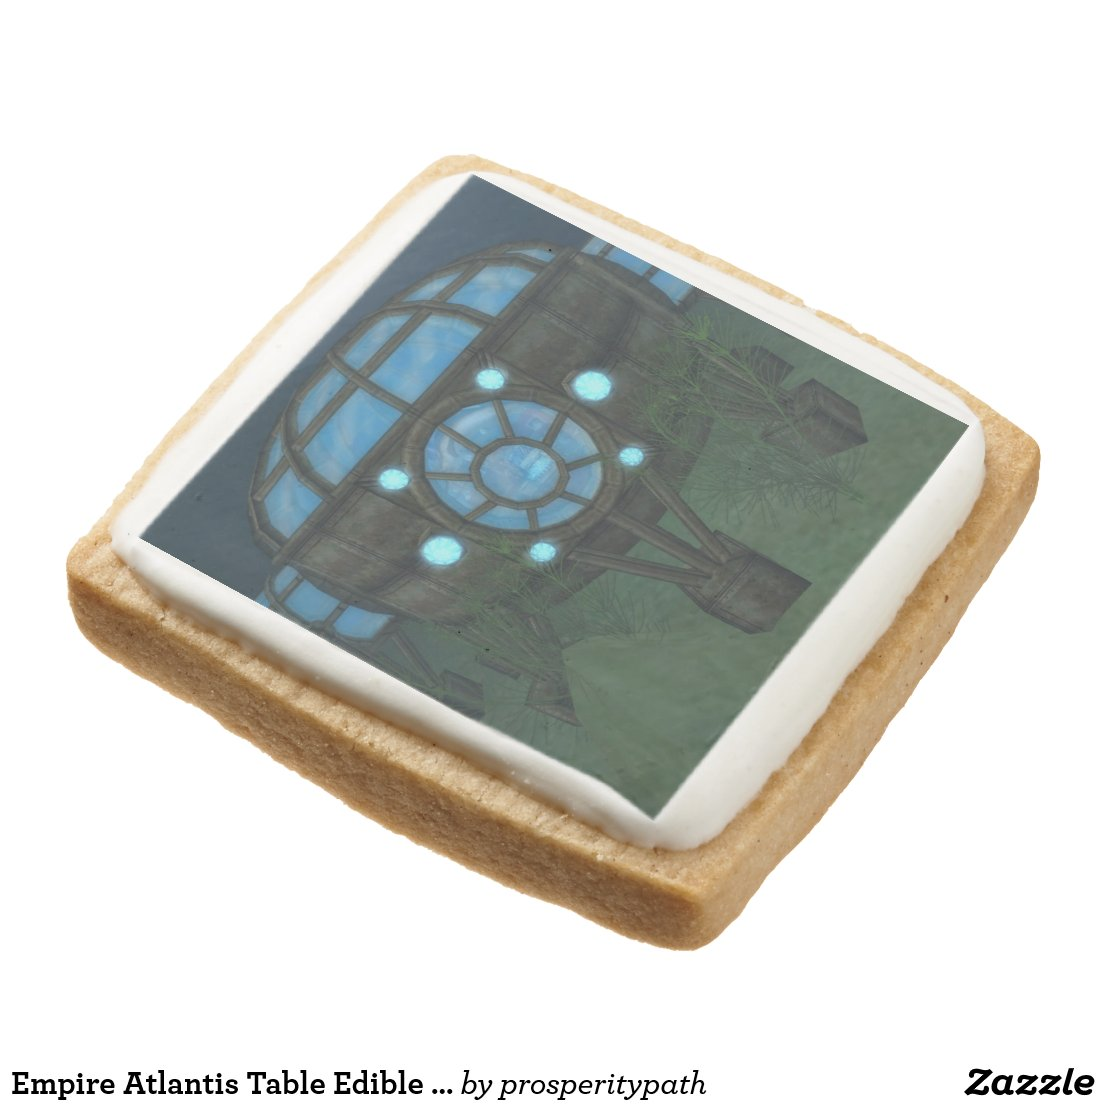 Empire Atlantis Table Edible Gaming Pieces Square Shortbread Cookie